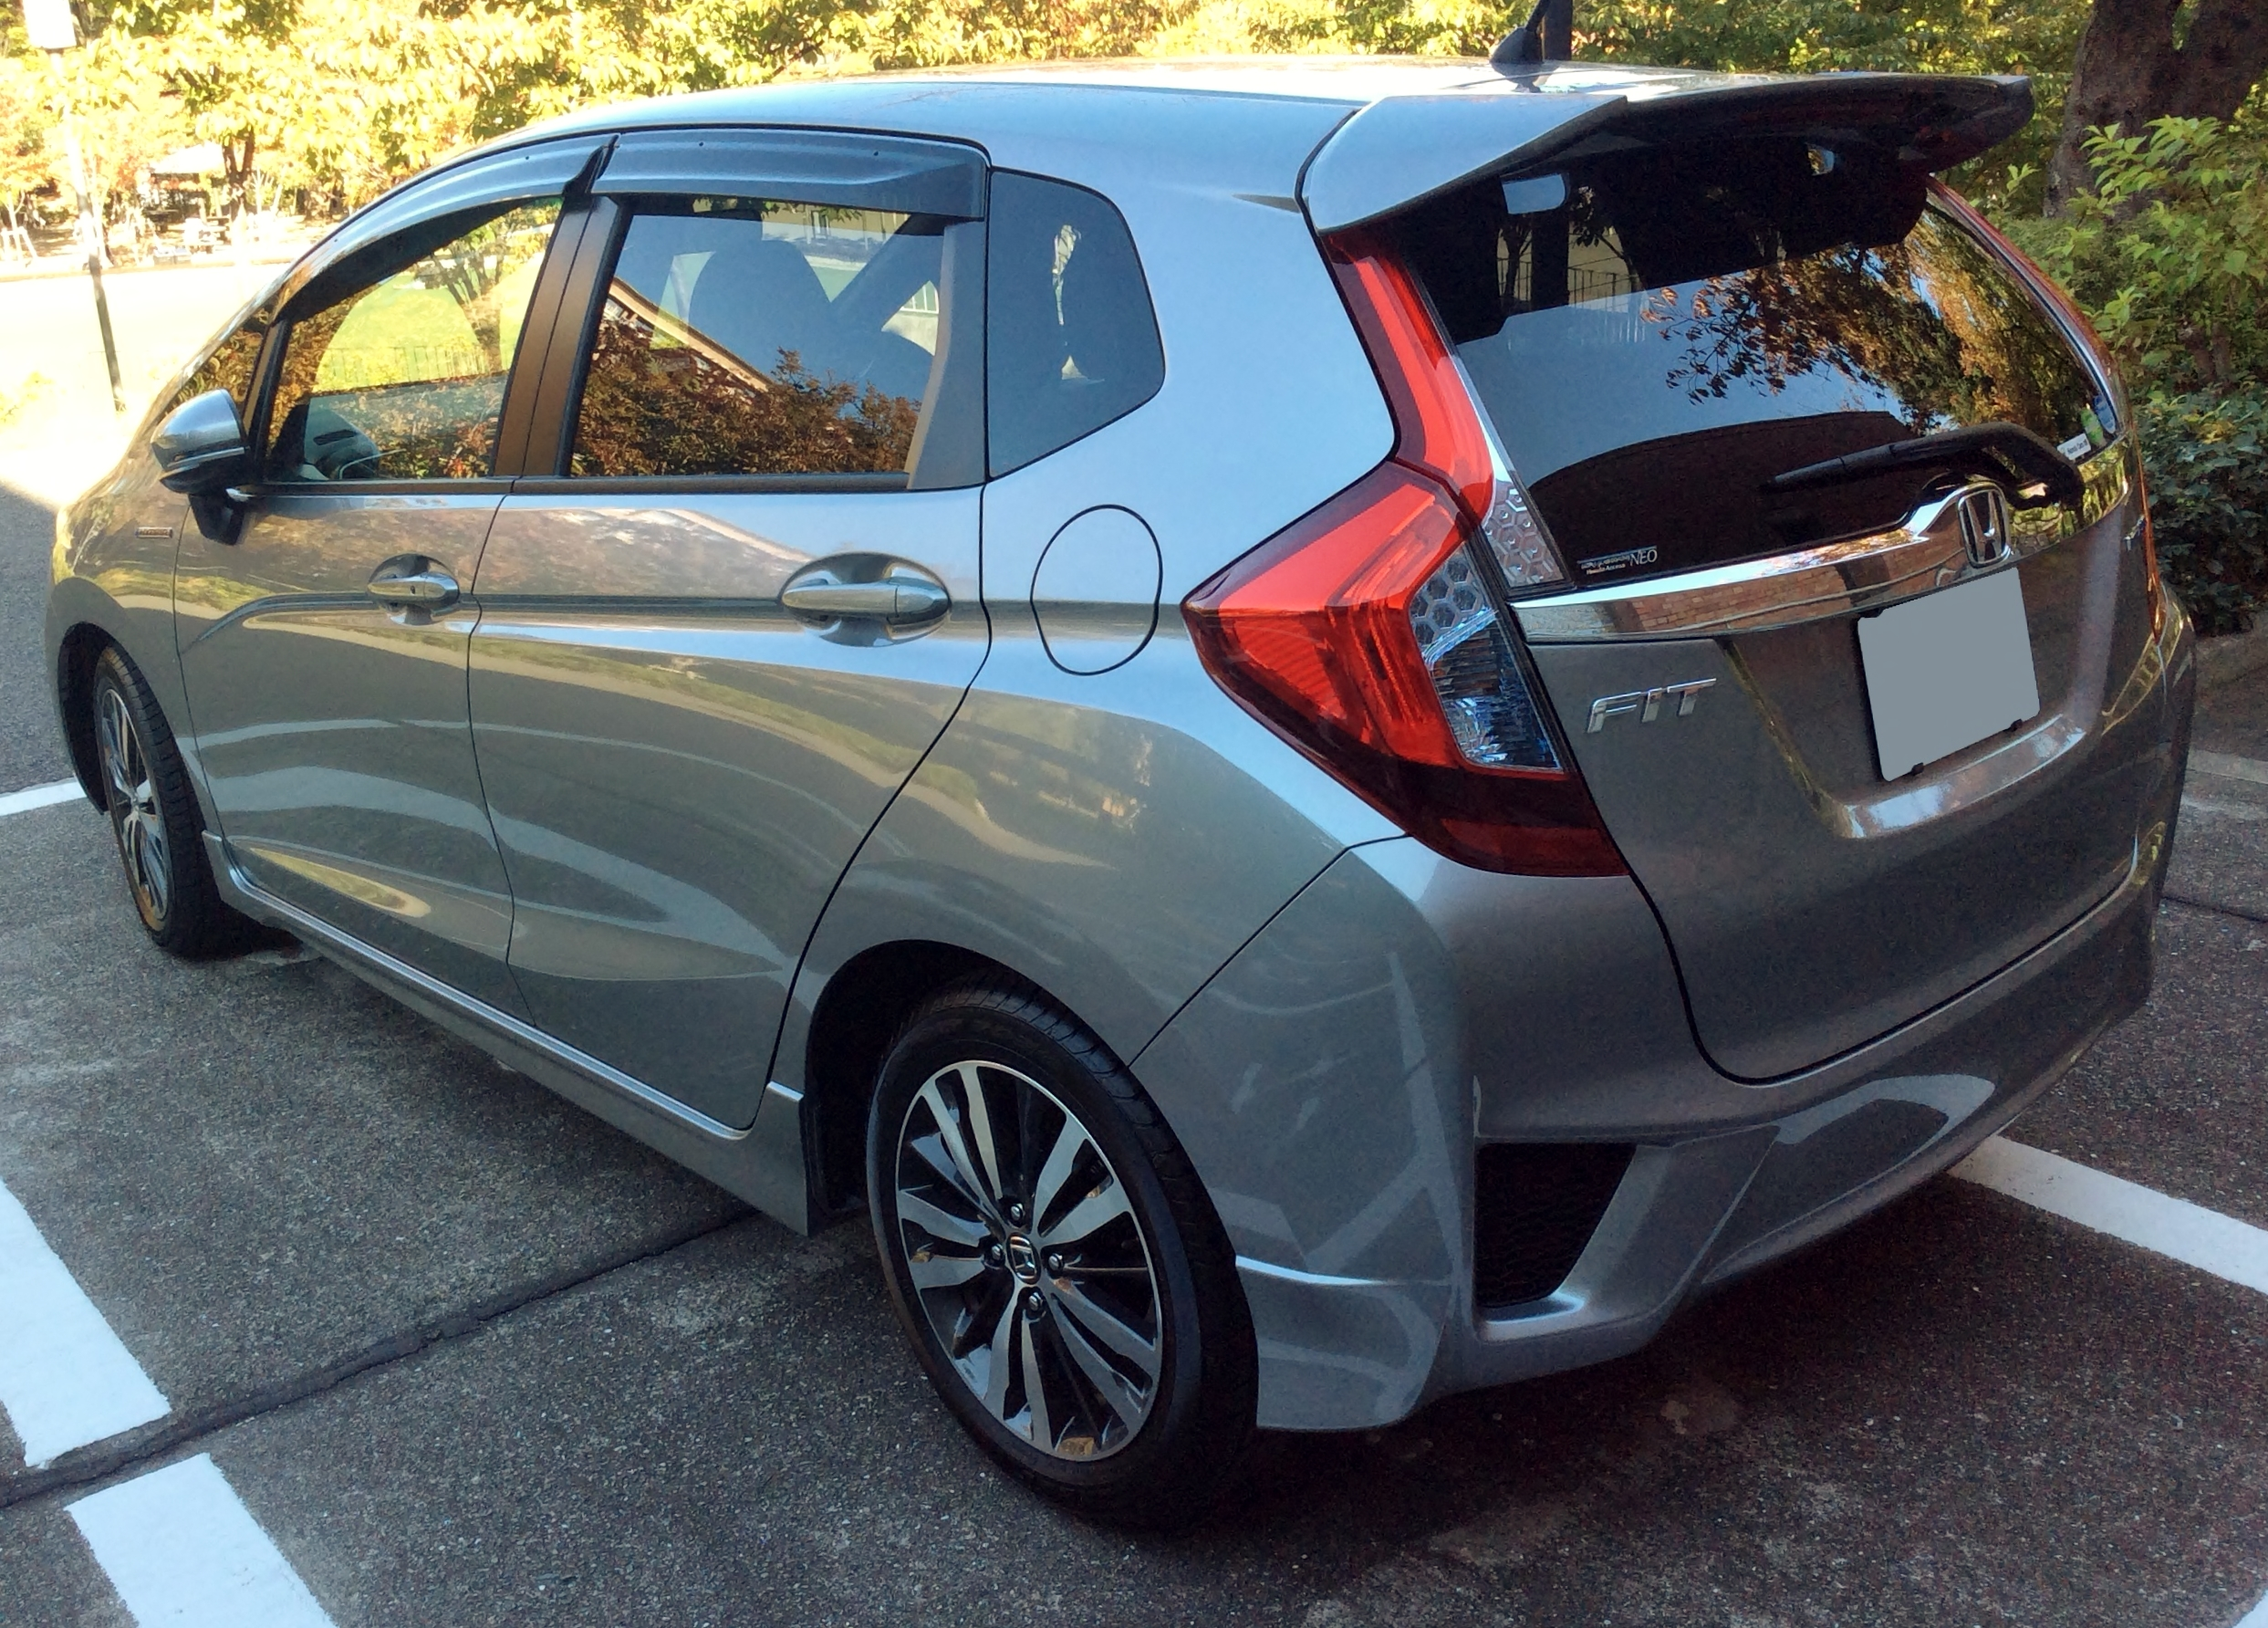 Honda Fit Paint Code Location